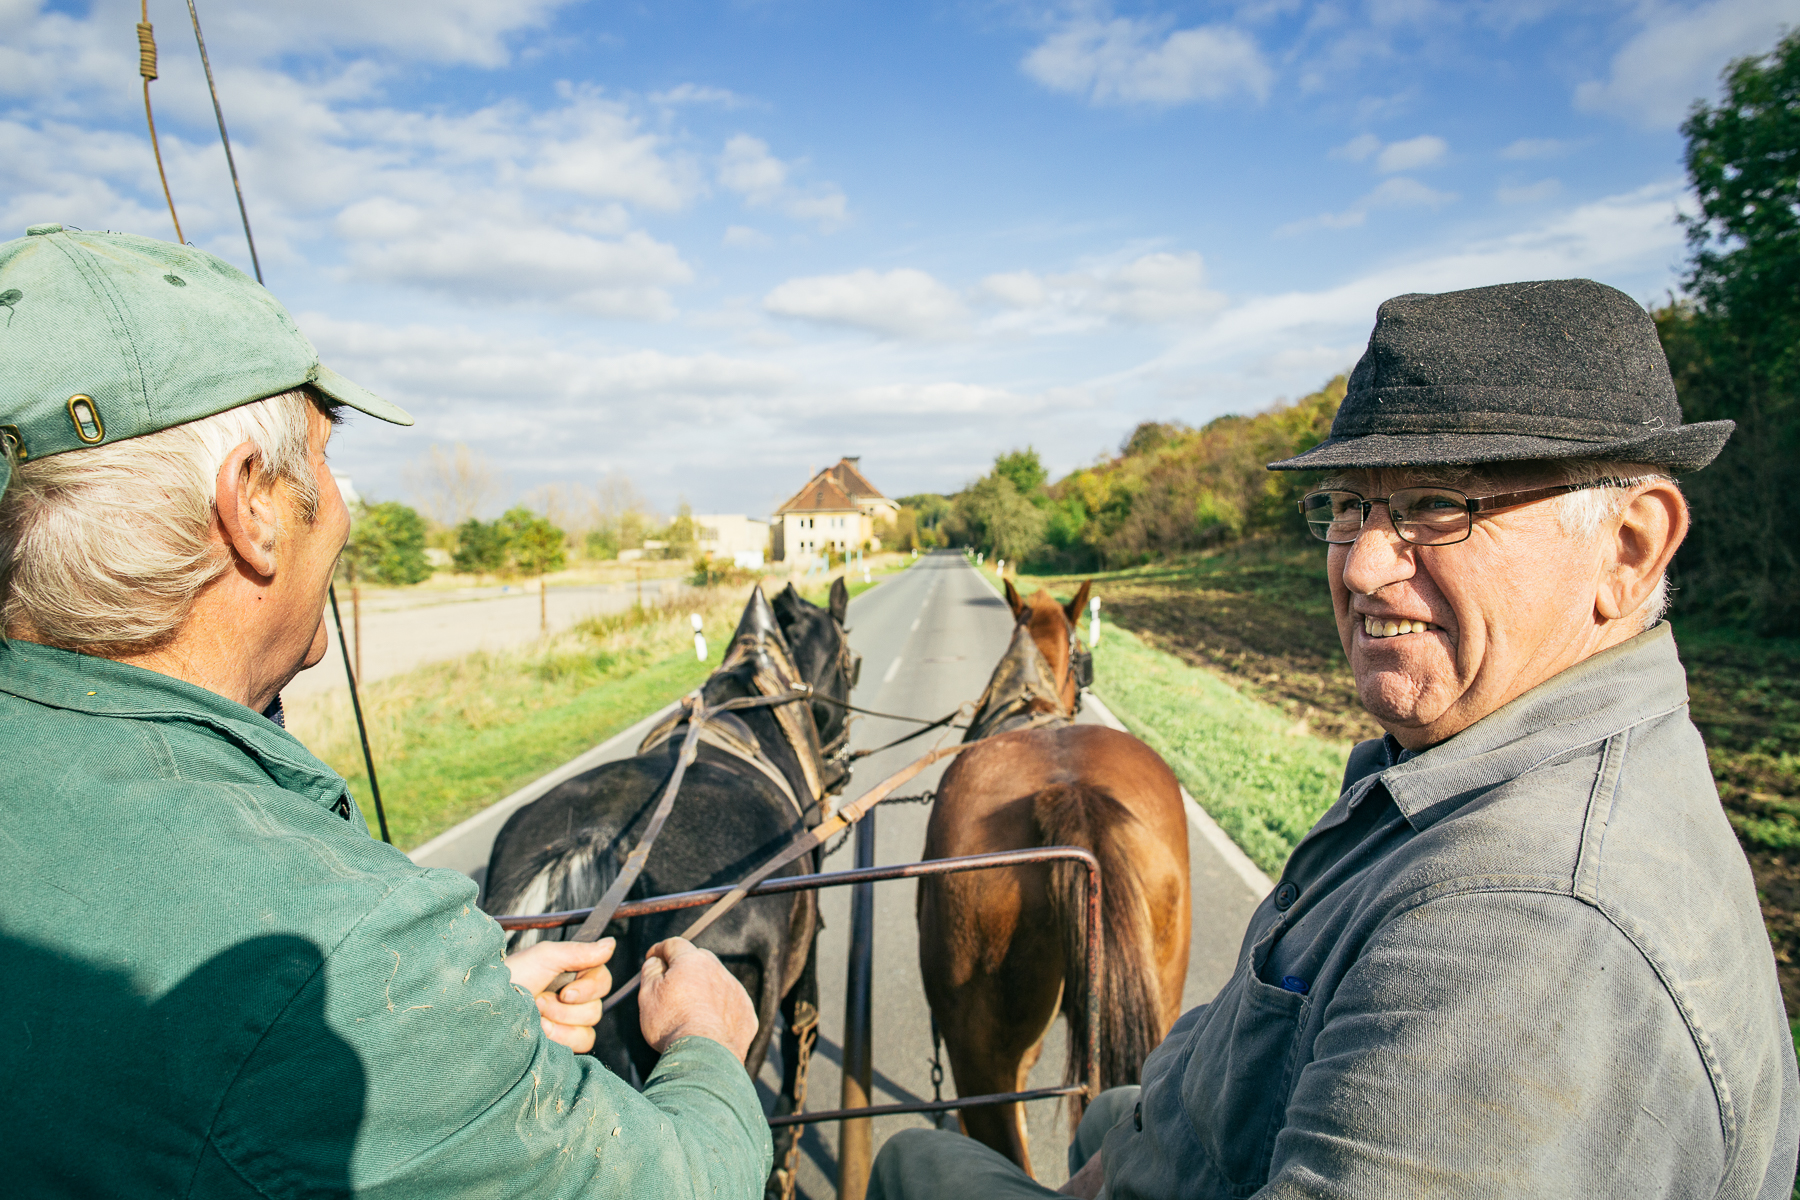 Elderly Men Riding a Horse Drawn Carriage